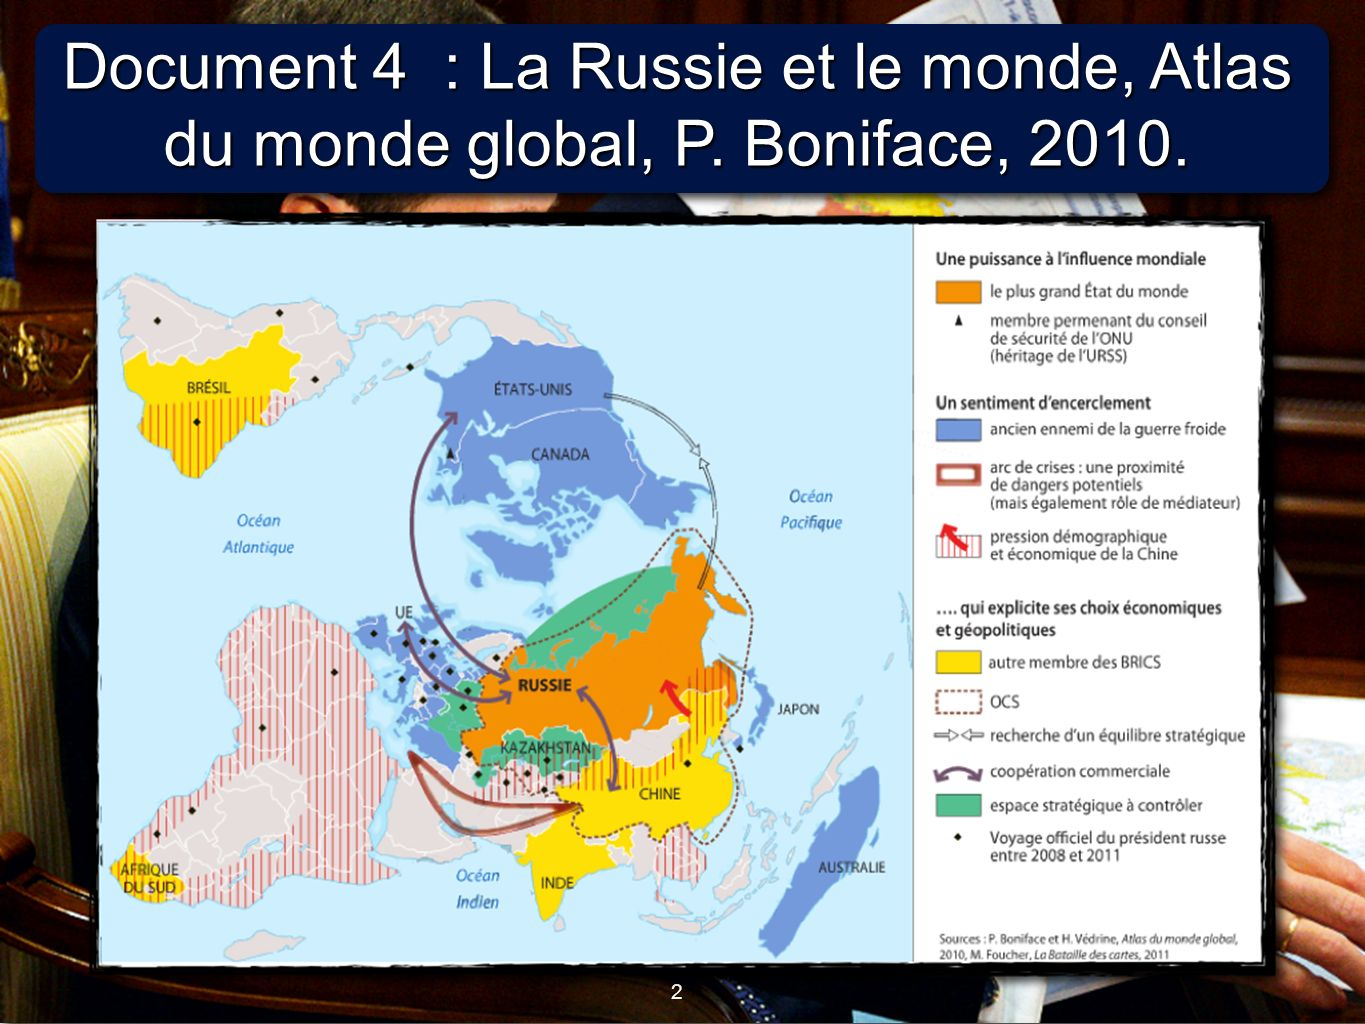 Document 4 : La Russie et le monde, Atlas du monde global, P